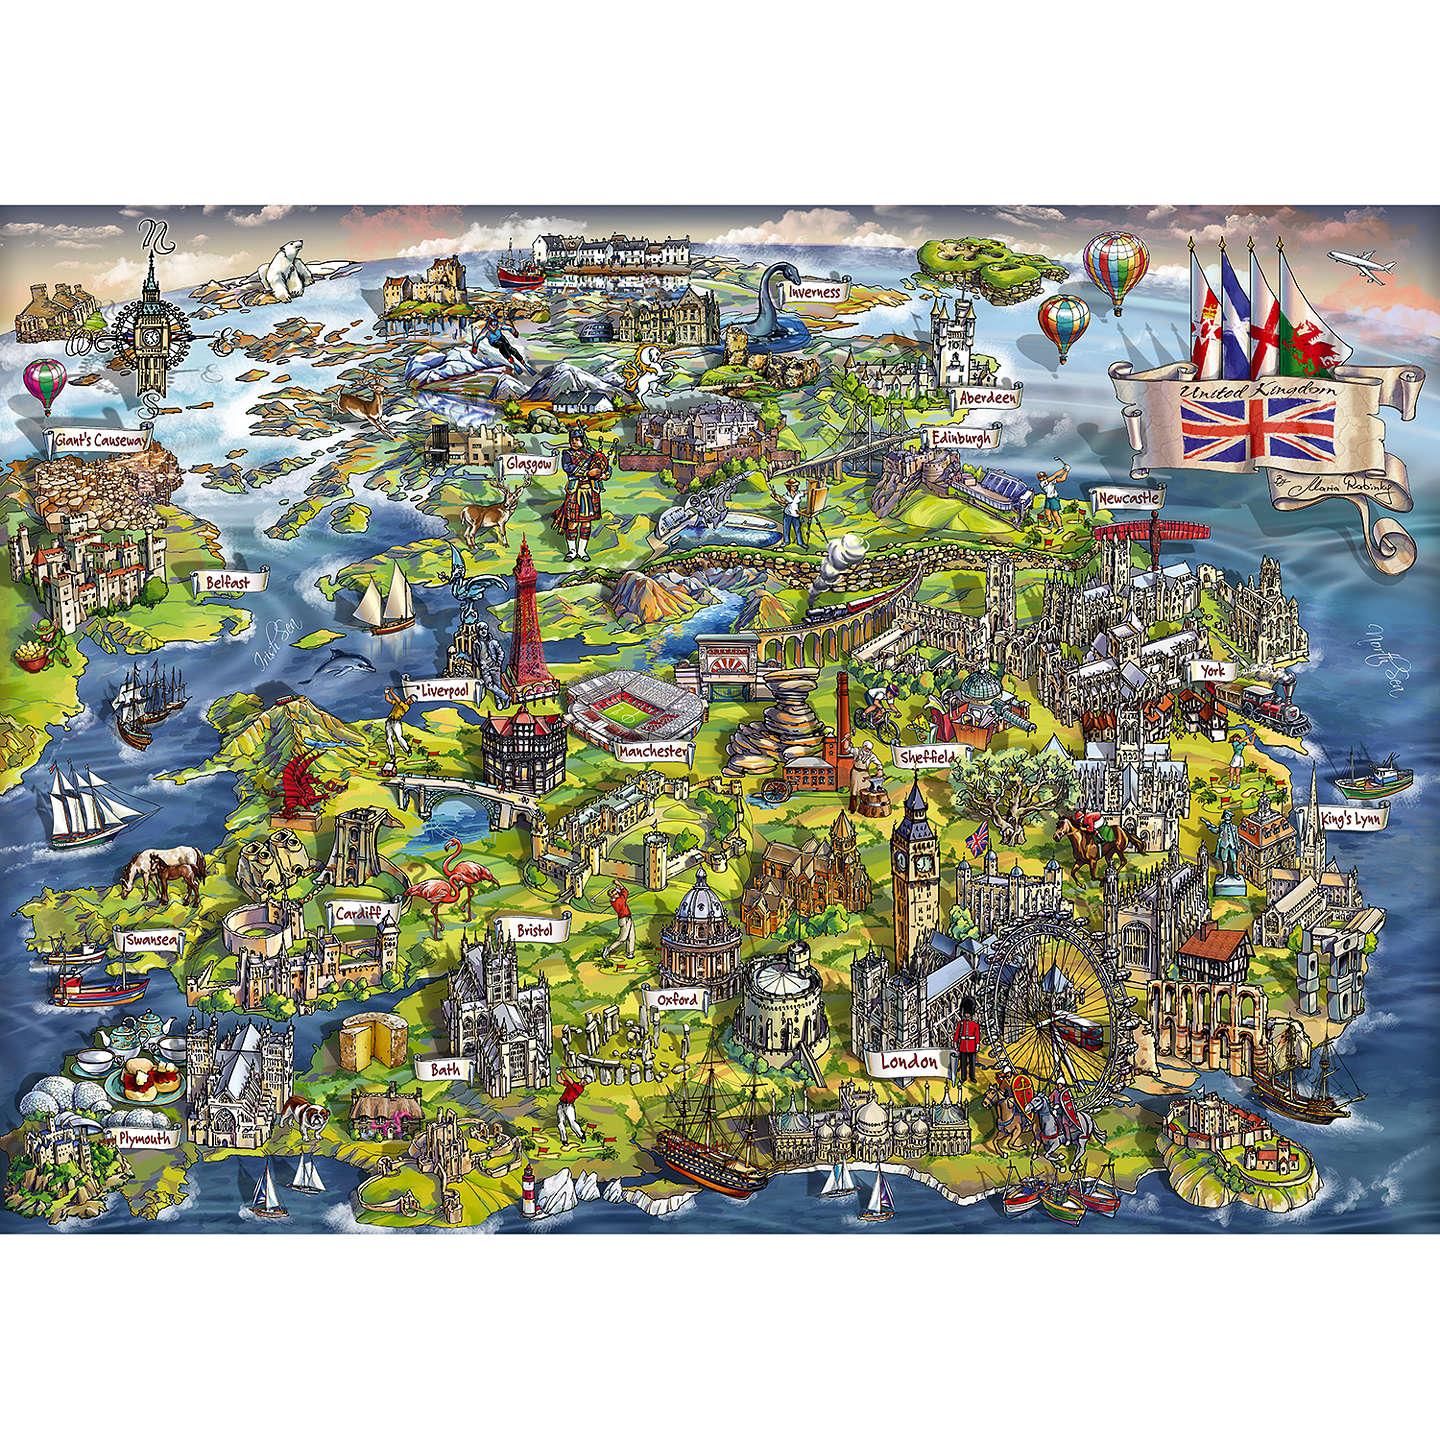 Gibsons beautiful britain uk map jigsaw puzzle 1000 pieces at john buygibsons beautiful britain uk map jigsaw puzzle 1000 pieces online at johnlewis gumiabroncs Gallery